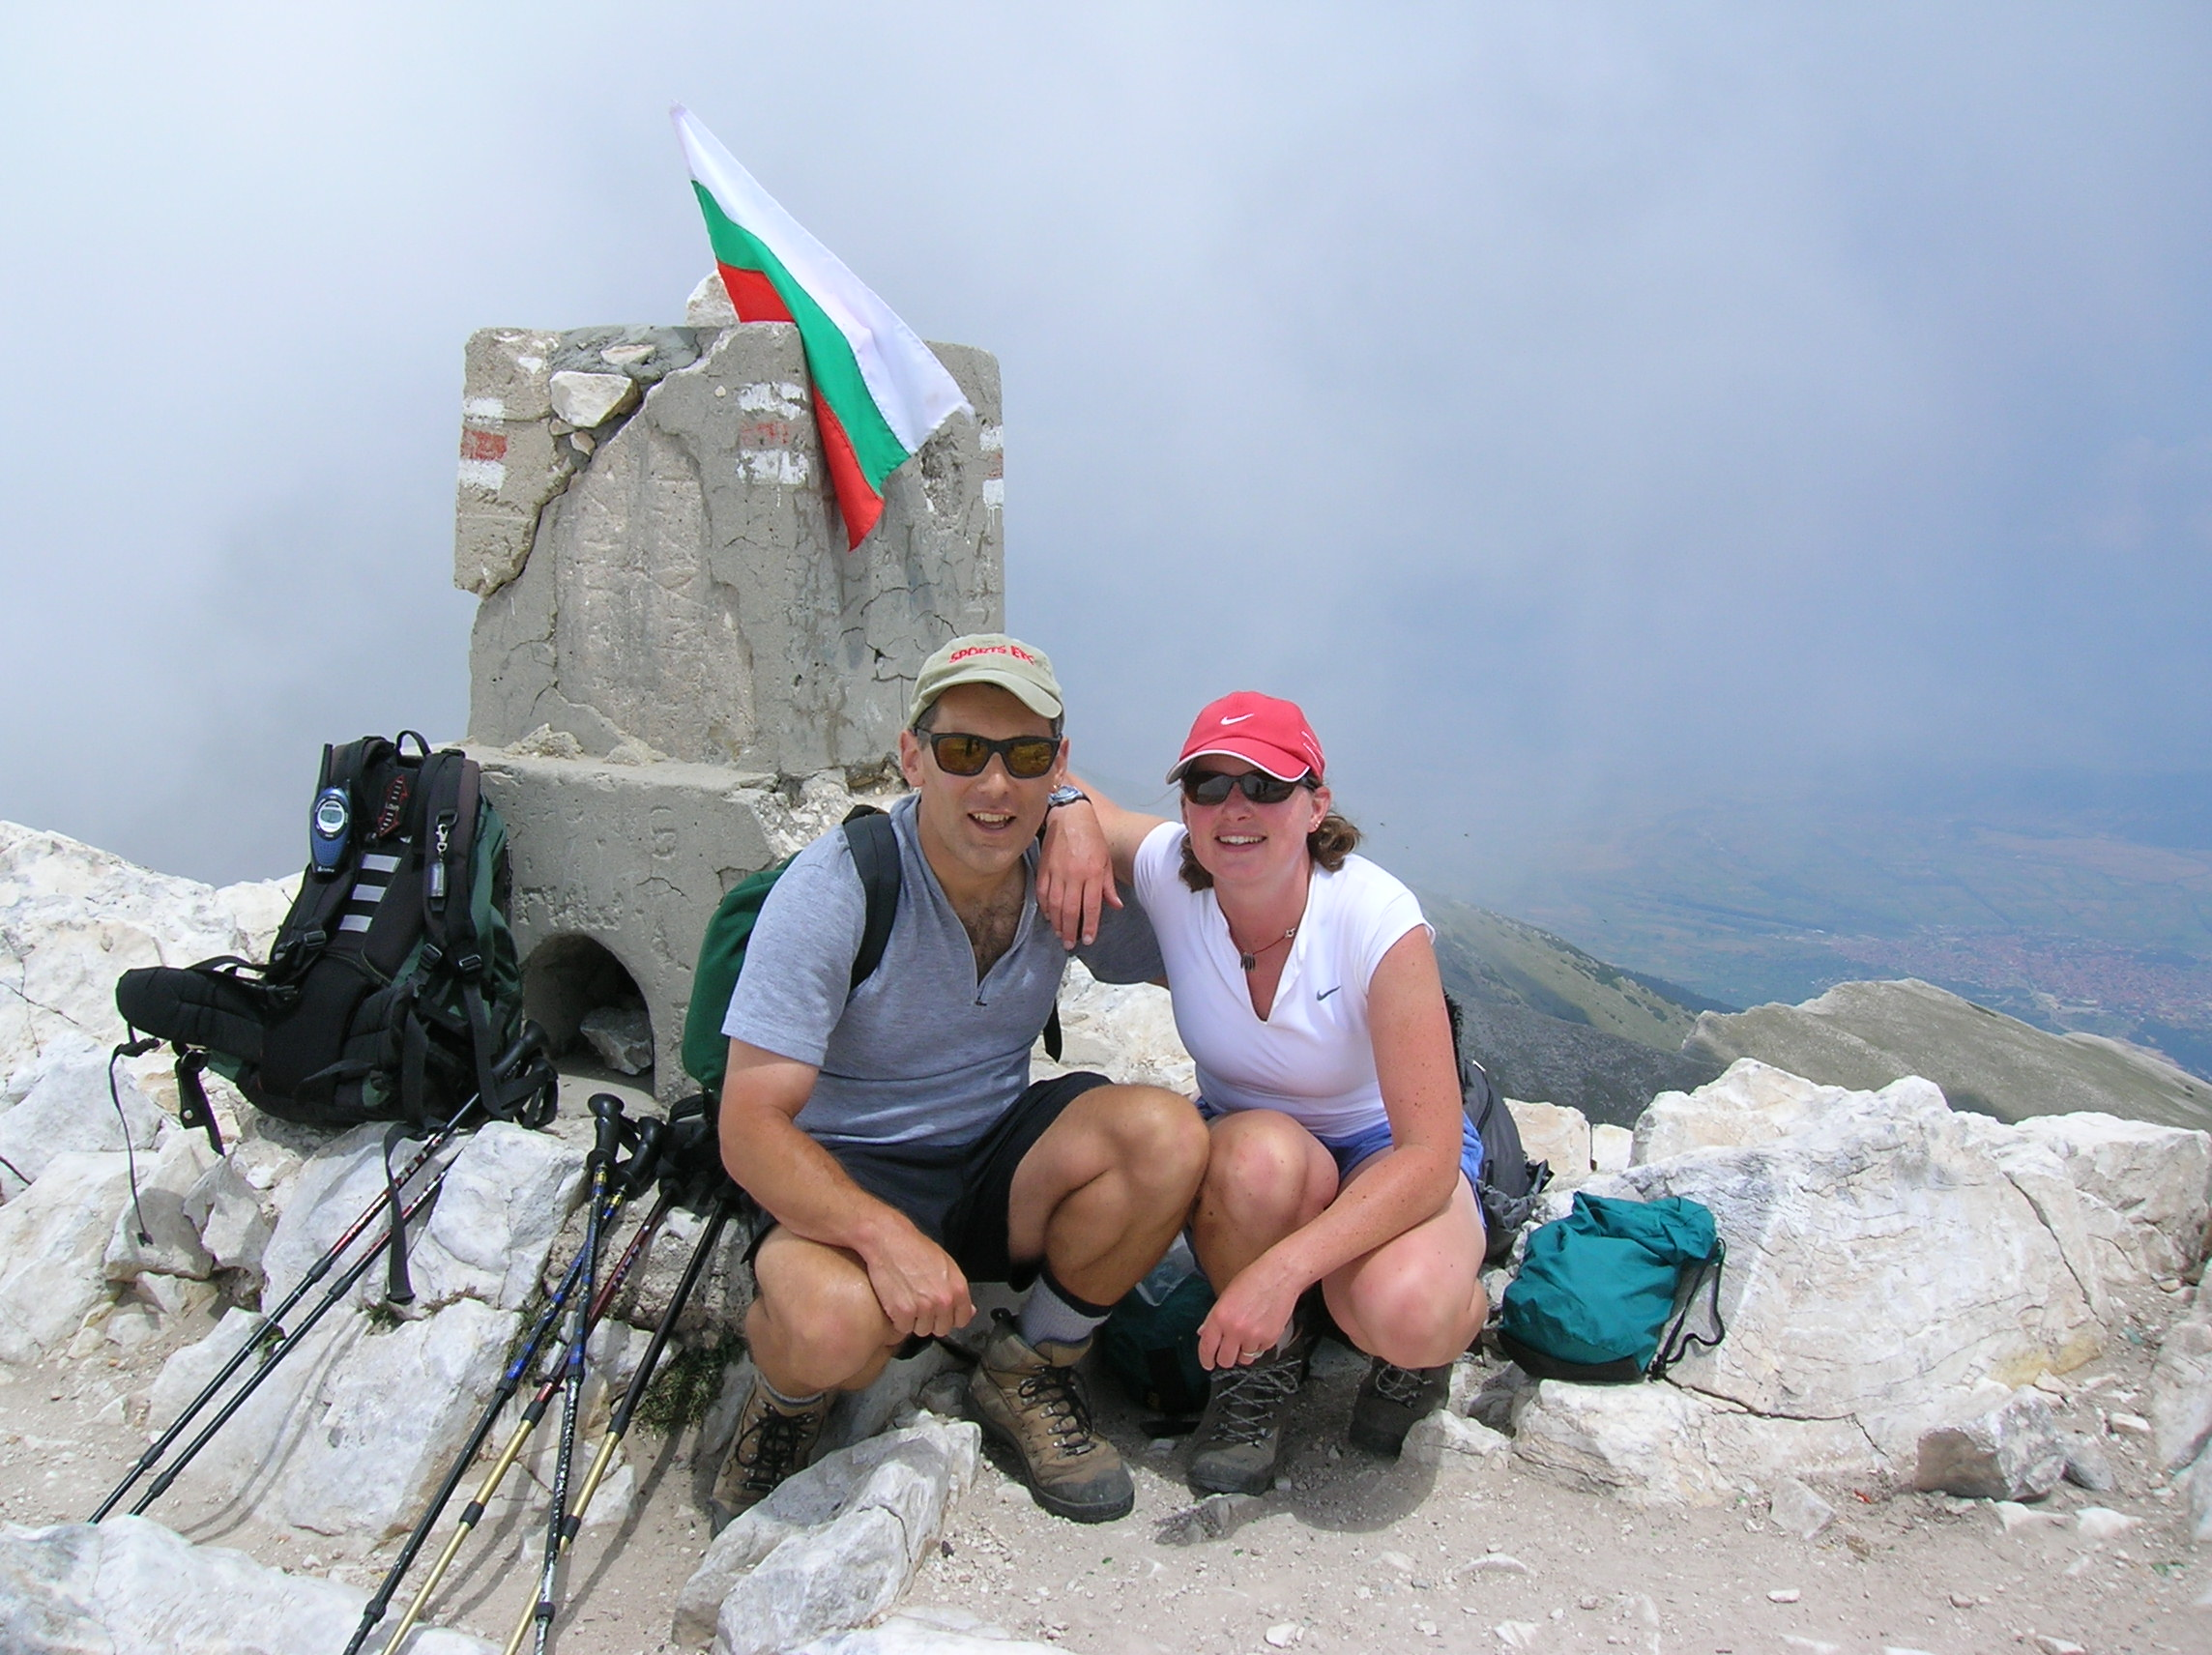 Craig and Heather on Vihren in the Pirins, the 2nd Highest peak in Bulgaria